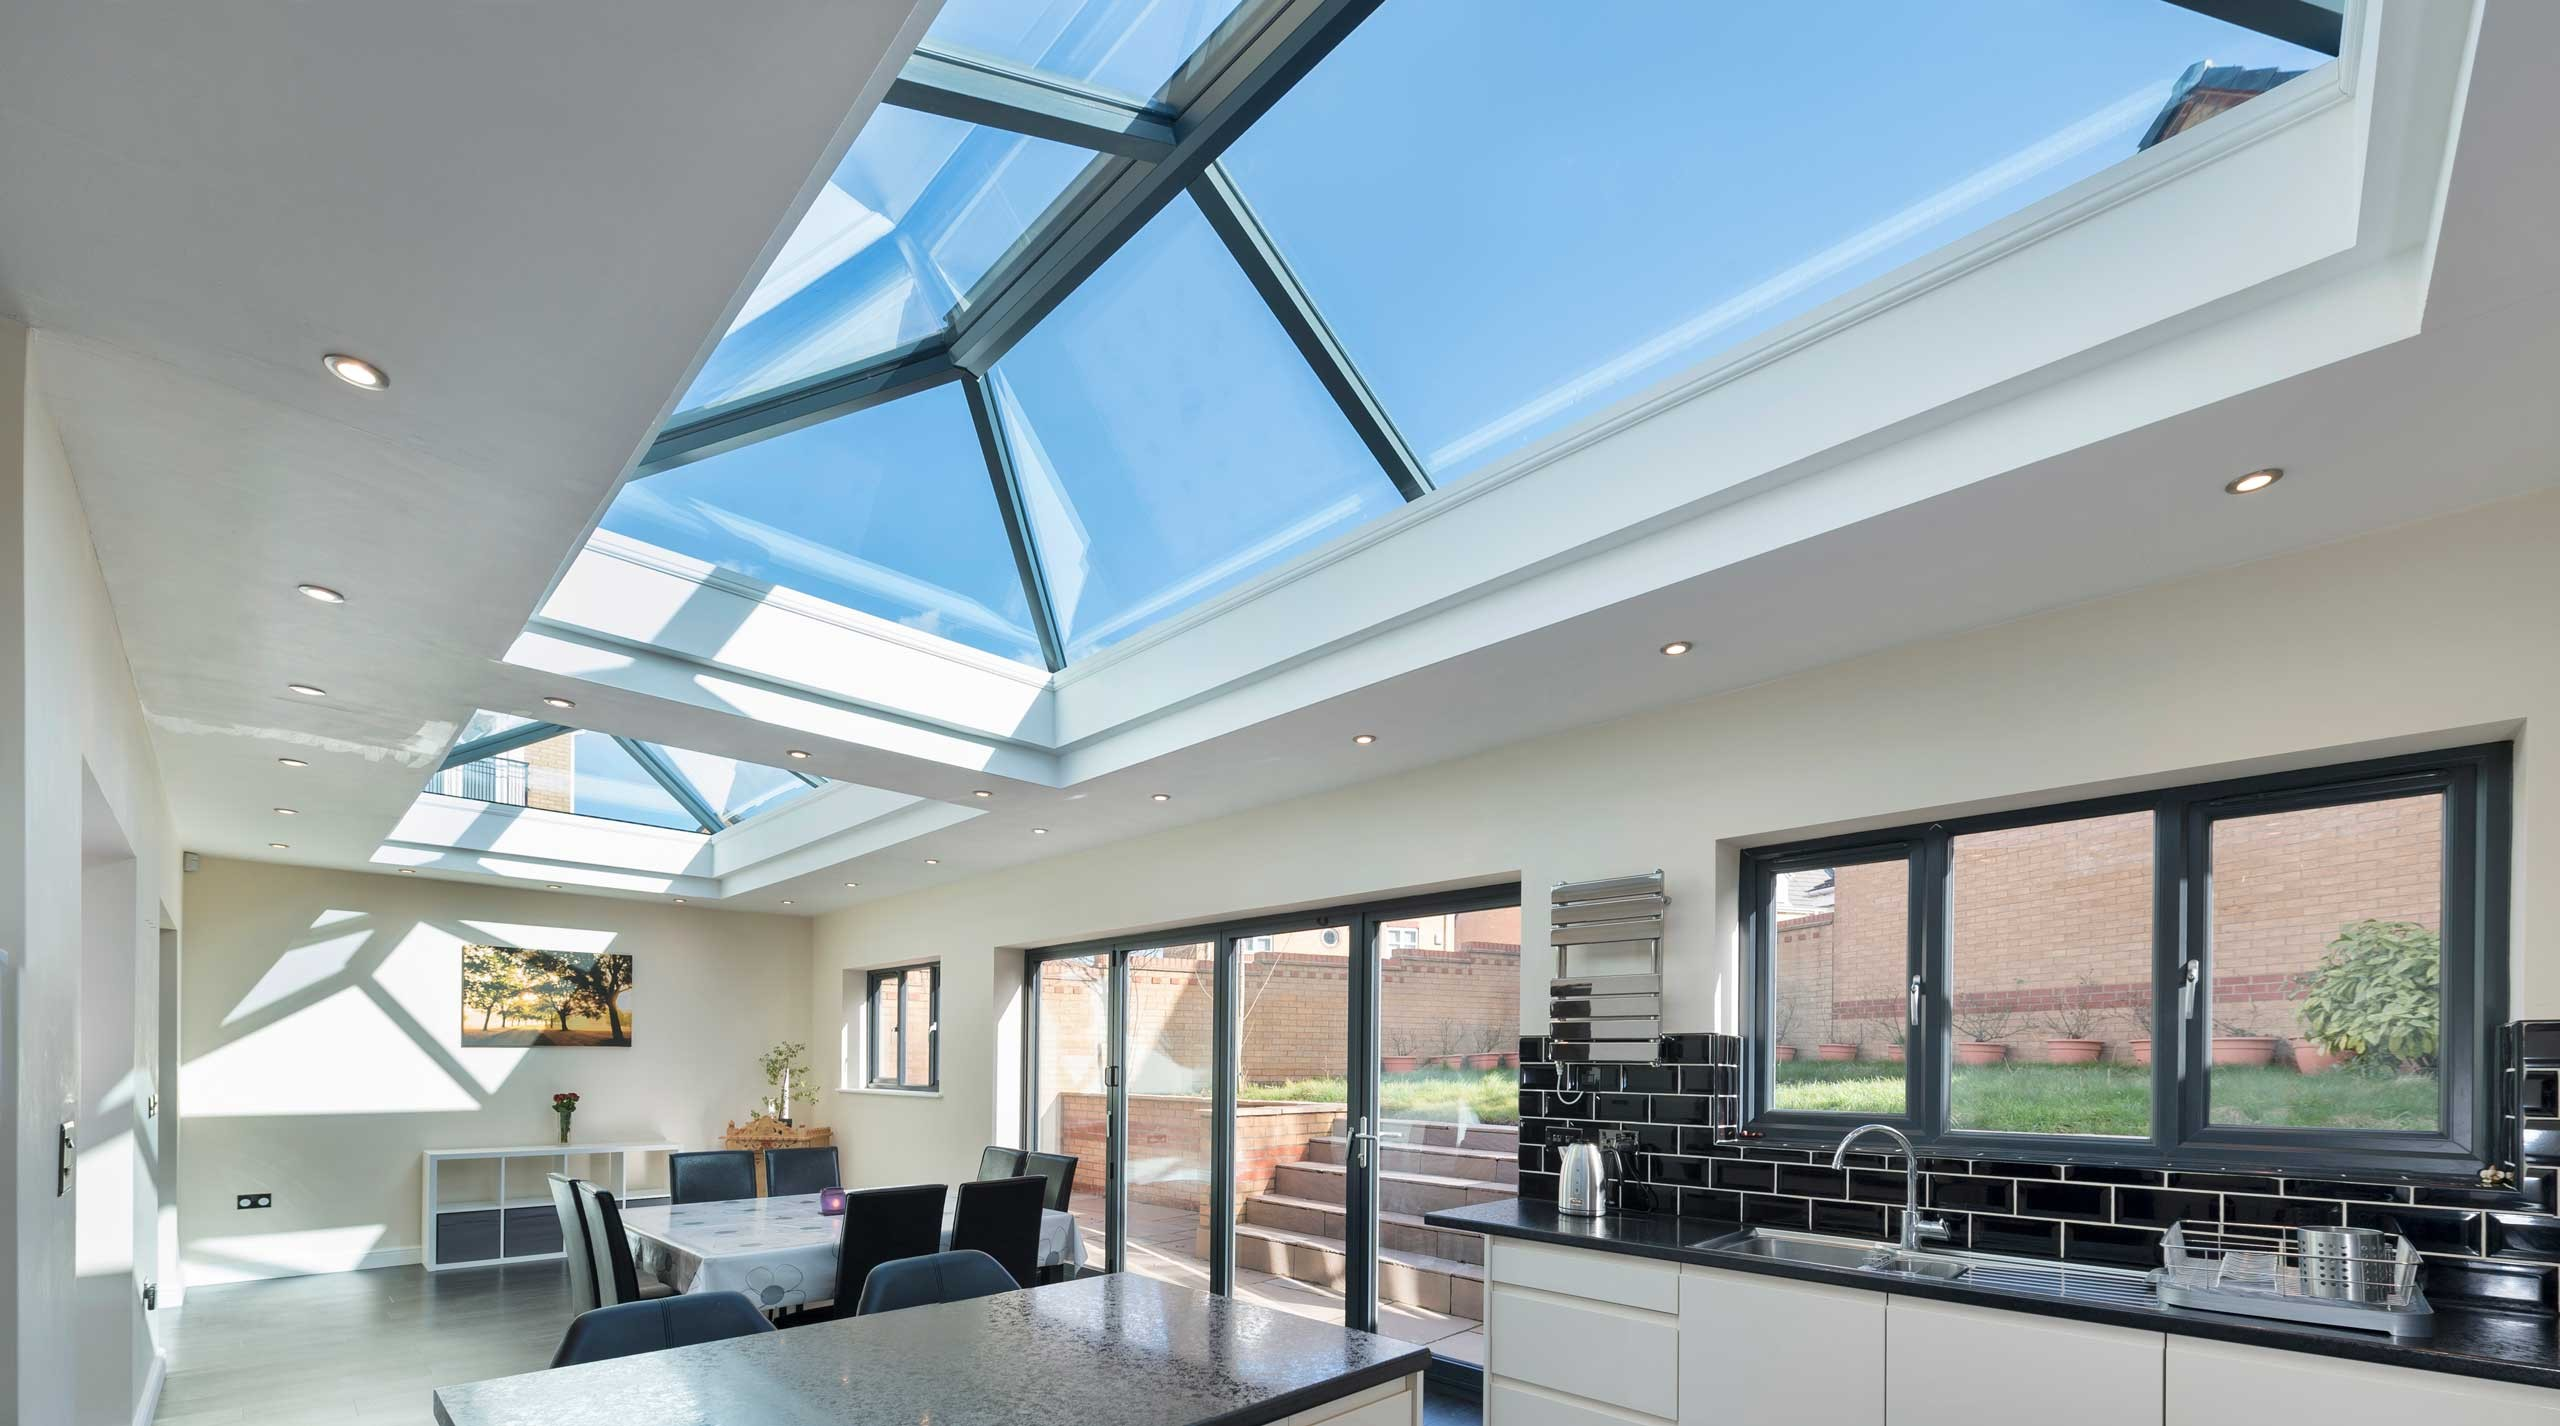 Ultrasky Lantern Roof Lanterns Ultraframe Trade